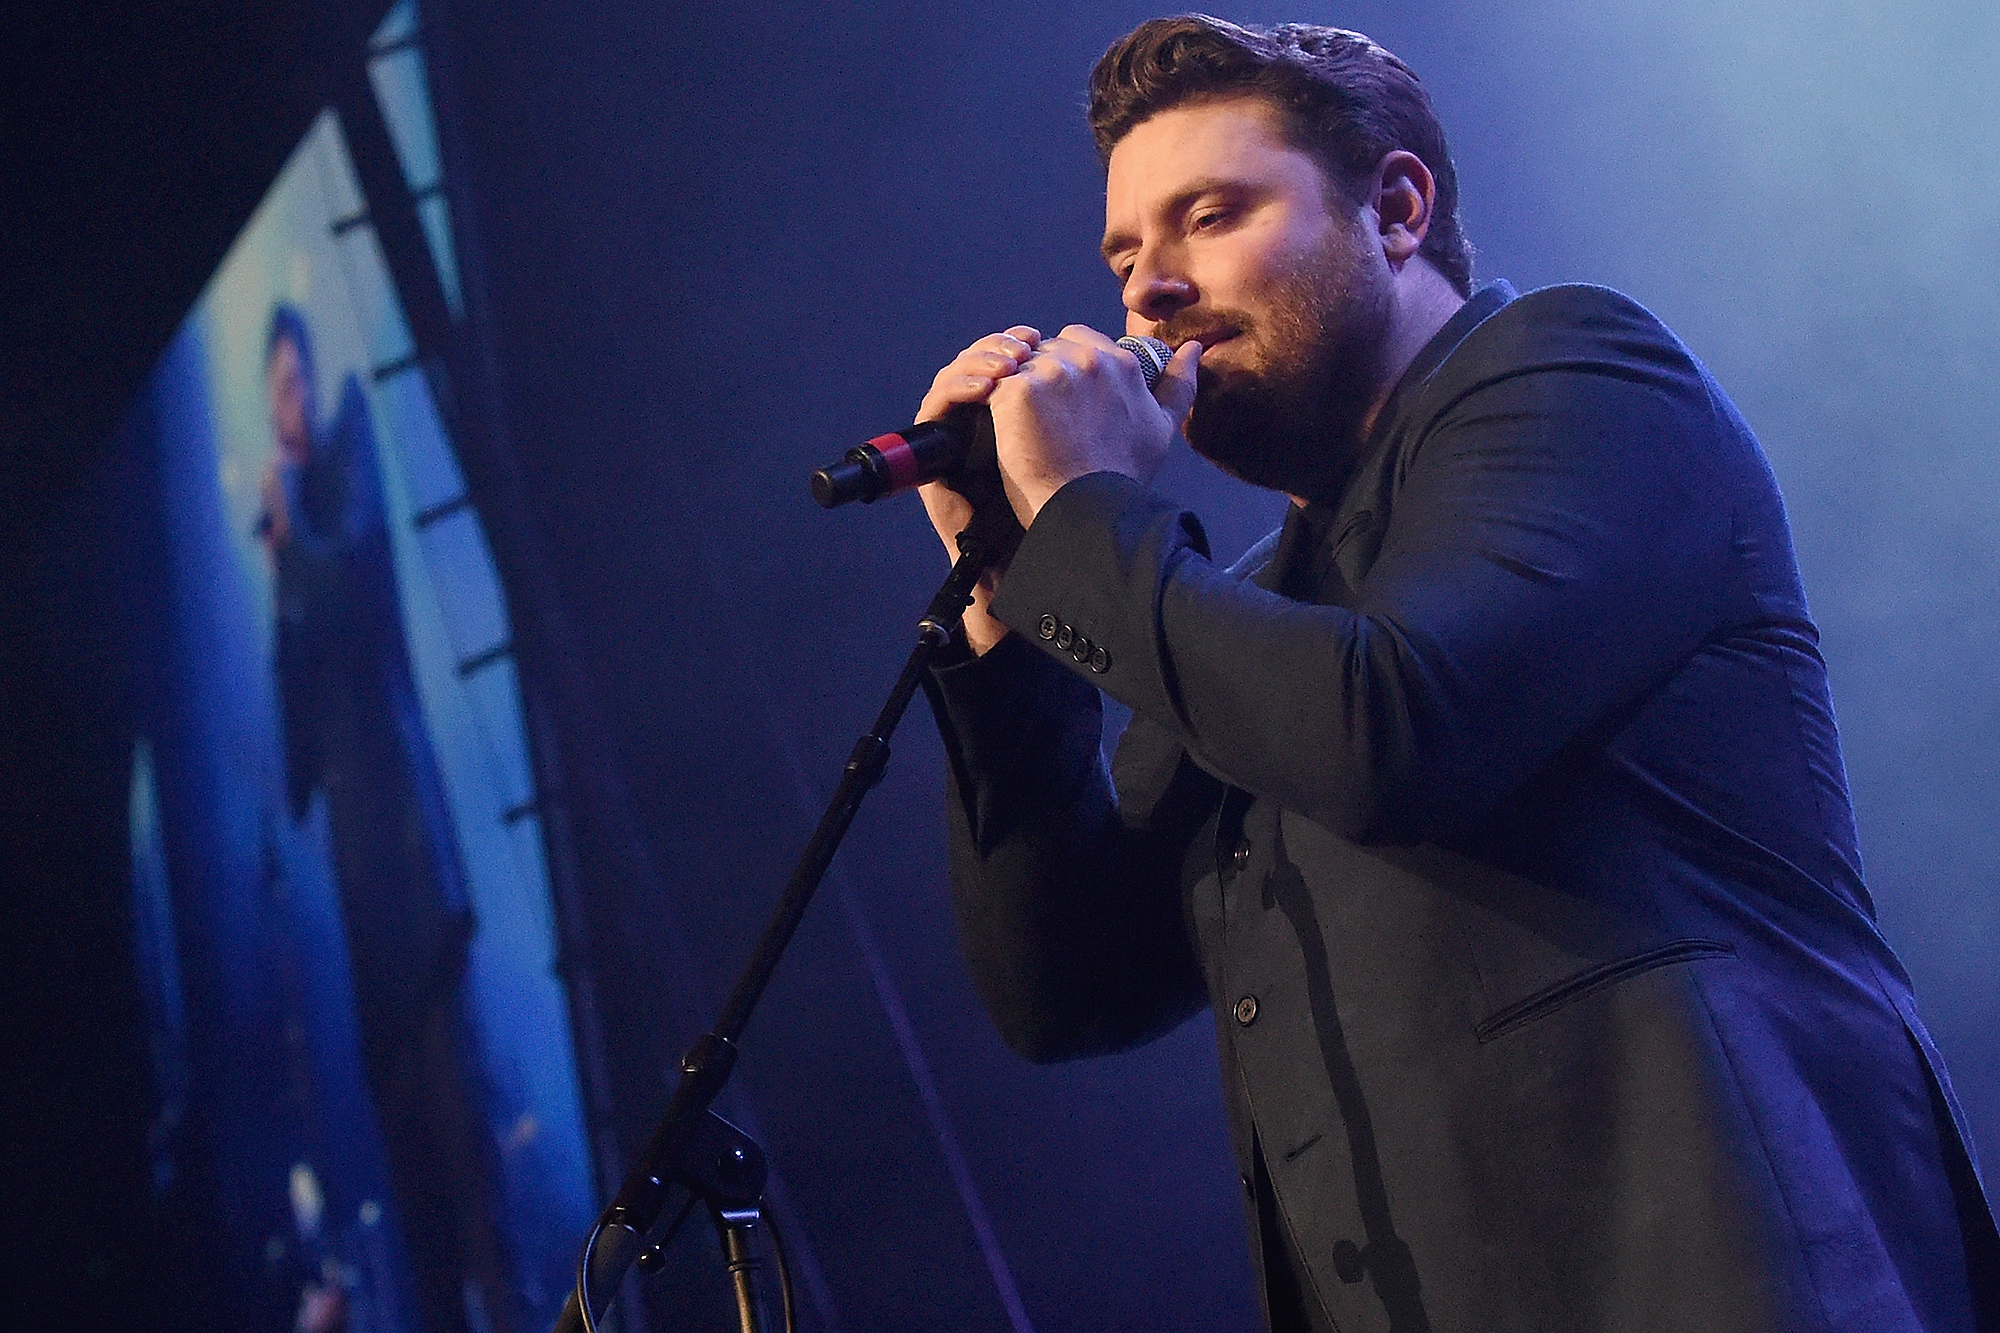 NASHVILLE, TN - FEBRUARY 08: Chris Young performs during 1 Night. 1 Place. 1 Time: A Heroes & Friends Tribute to Randy Travis at Bridgestone Arena on February 8, 2017 in Nashville, Tennessee. (Photo by Rick Diamond/Getty Images for Outback Concerts)